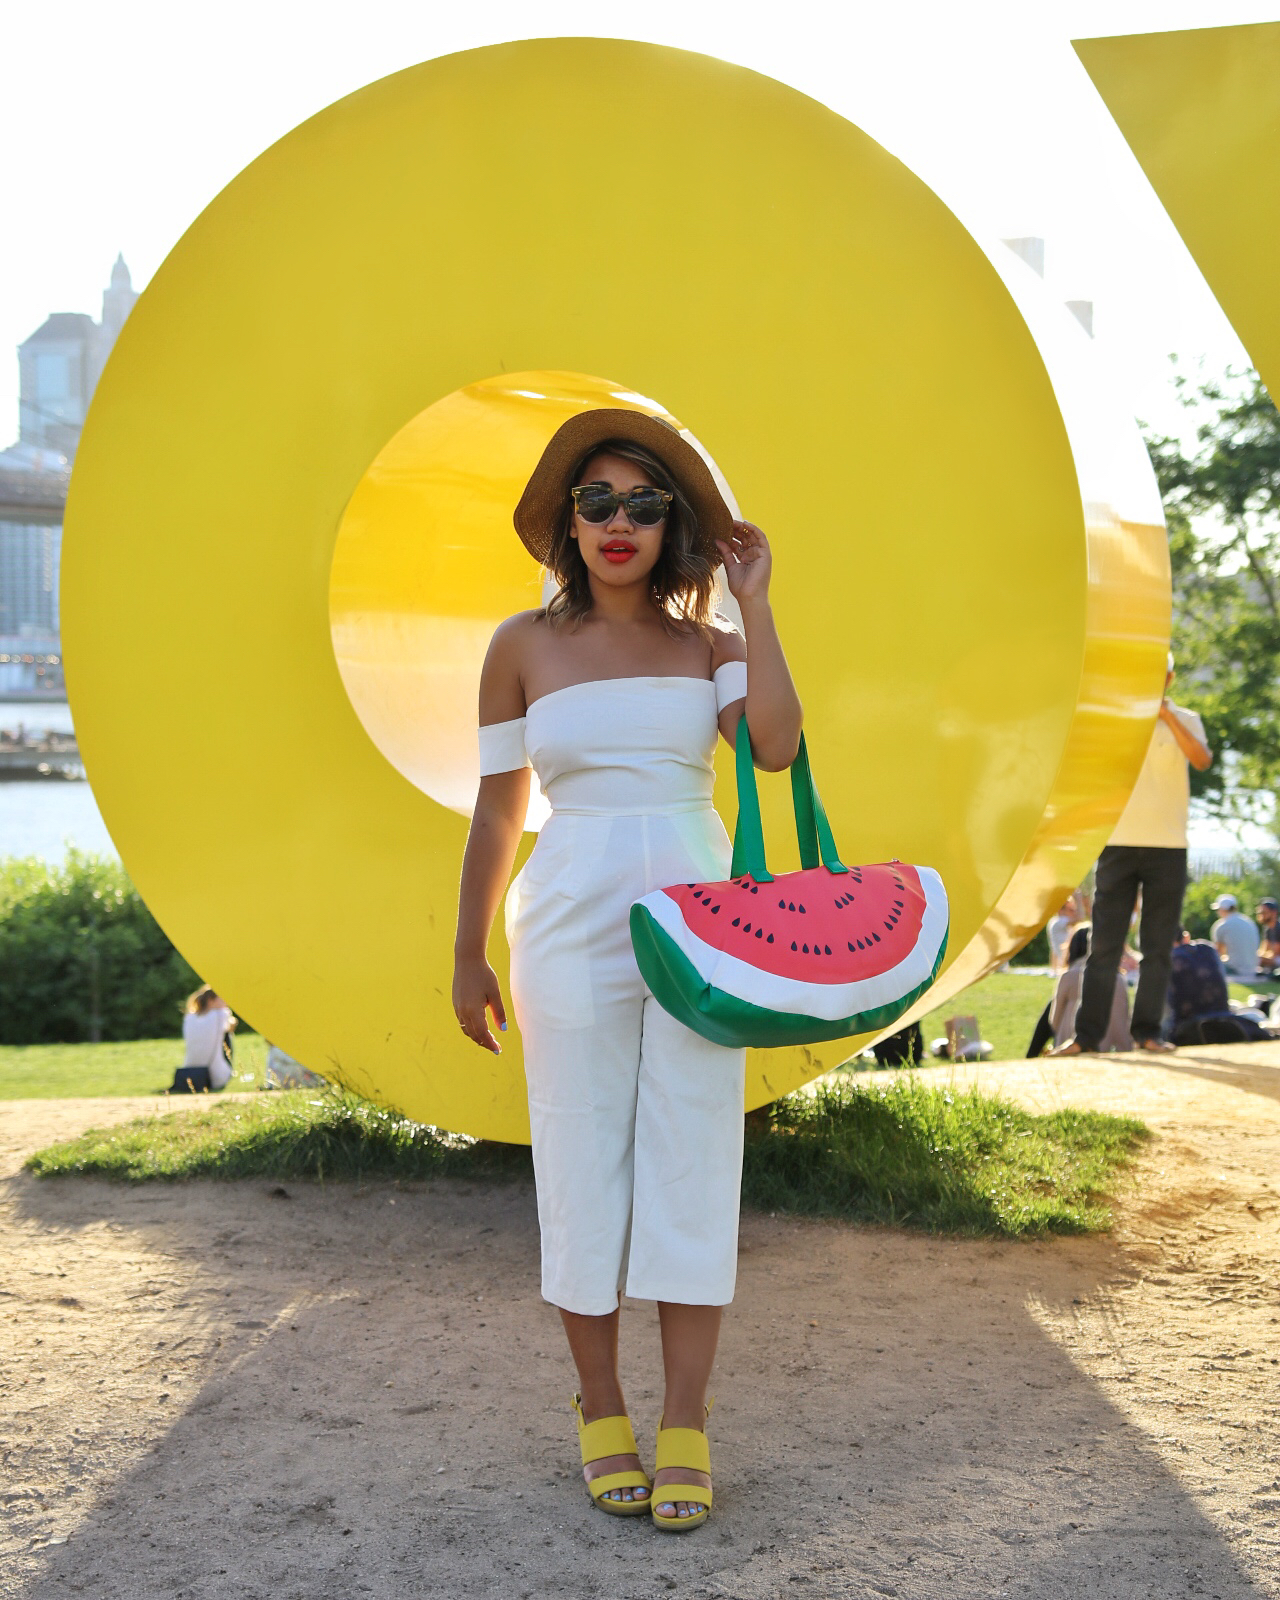 Color Me Courtney - Little White Jumpsuit // Jumpsuit >> http://bit.ly/littlewhitejumpsuit // Heels: http://bit.ly/yellow_sandals // bag: http://bit.ly/watermelonbagg